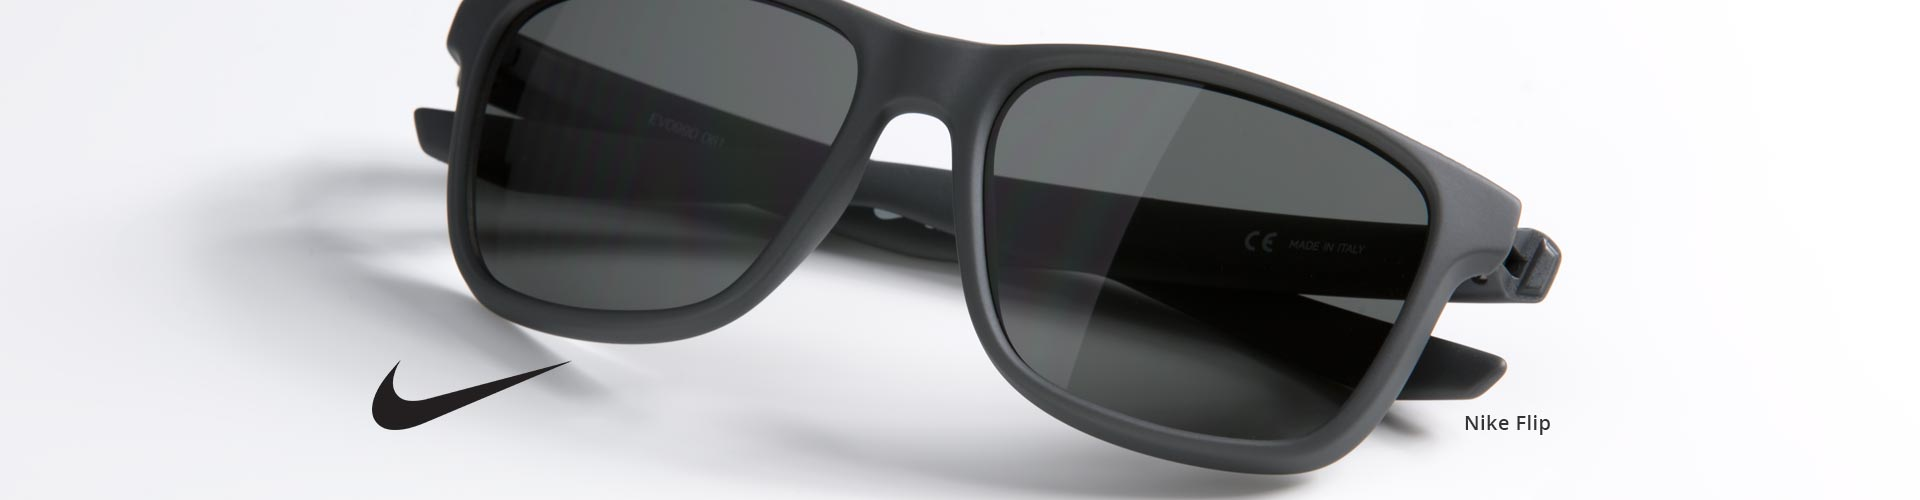 Shop Nike Prescription Sunglasses - model Flip featured